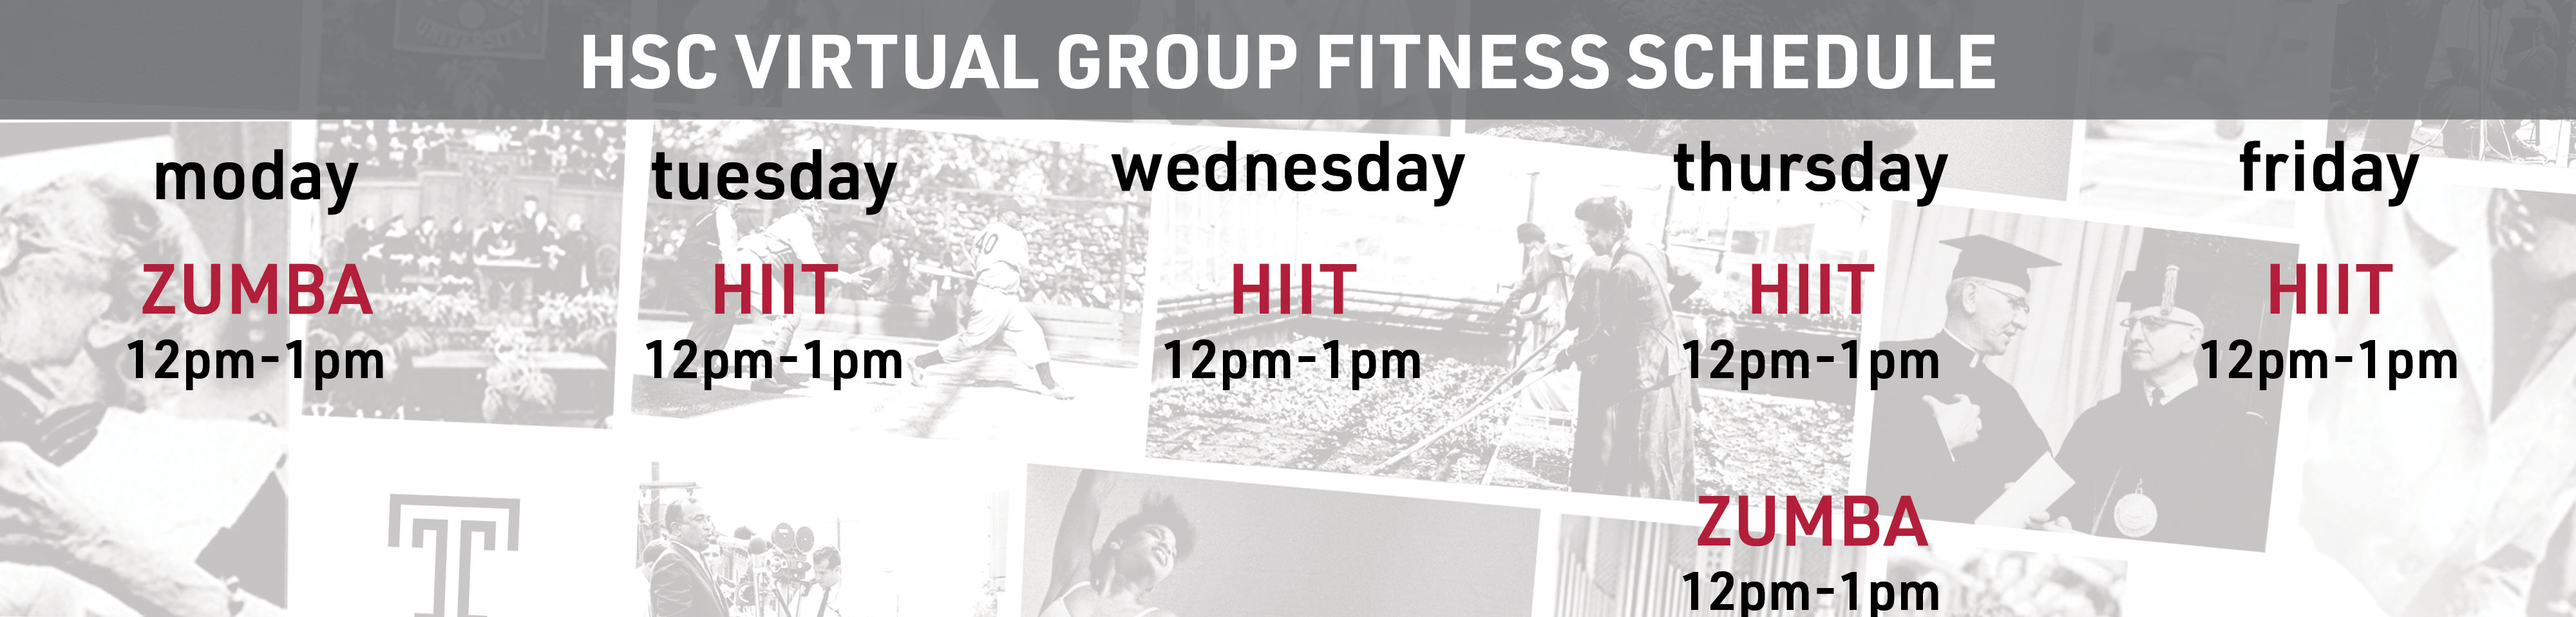 Recreation Group Fitness Schedule